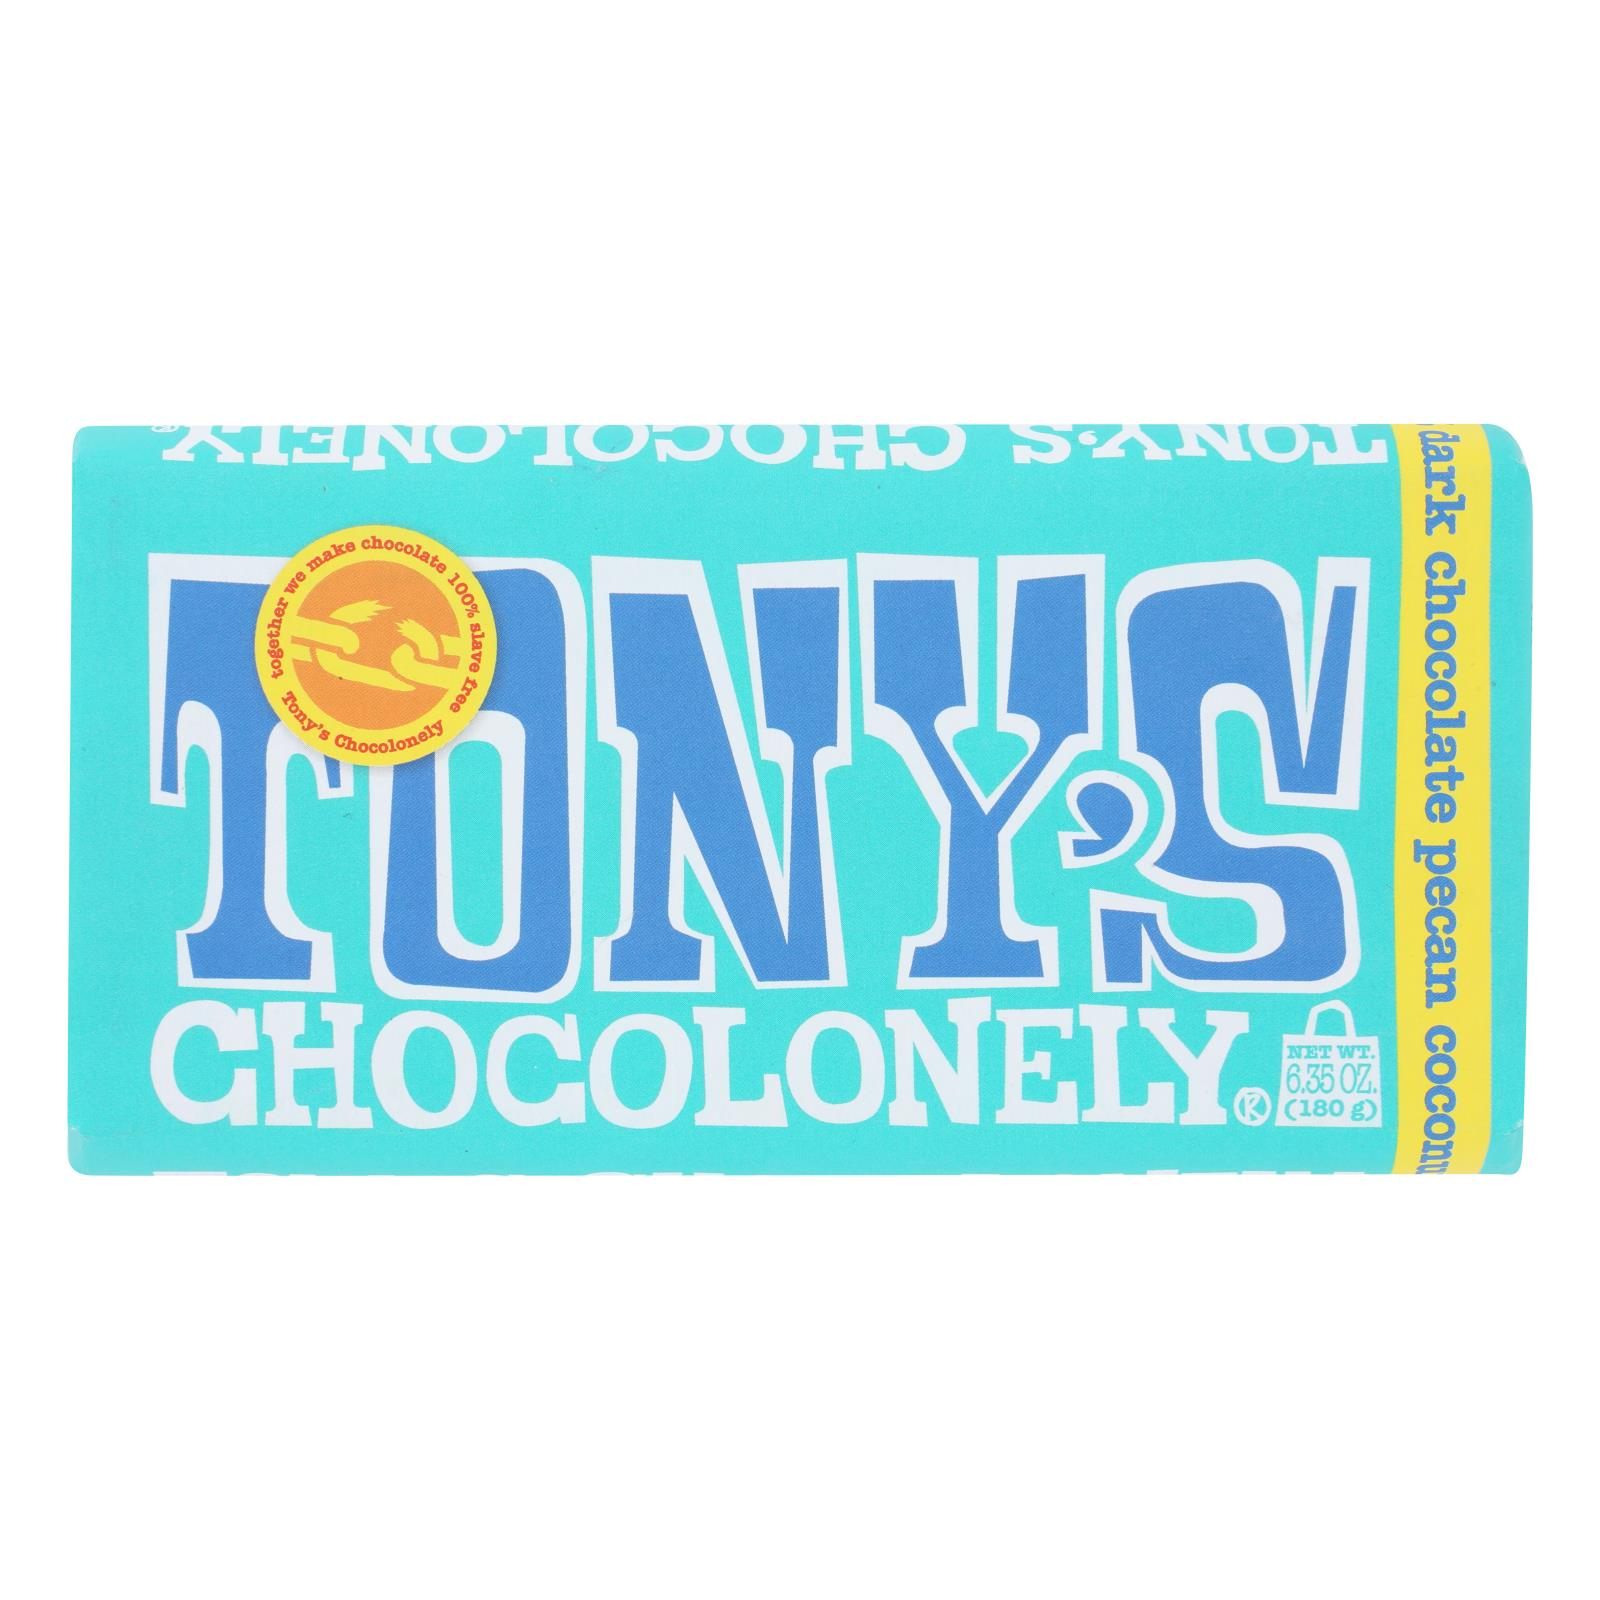 Tony's Chocolonely - Bar Chocolate Dk Pcn Coconut 51% - Case of 15 - 6.35 OZ